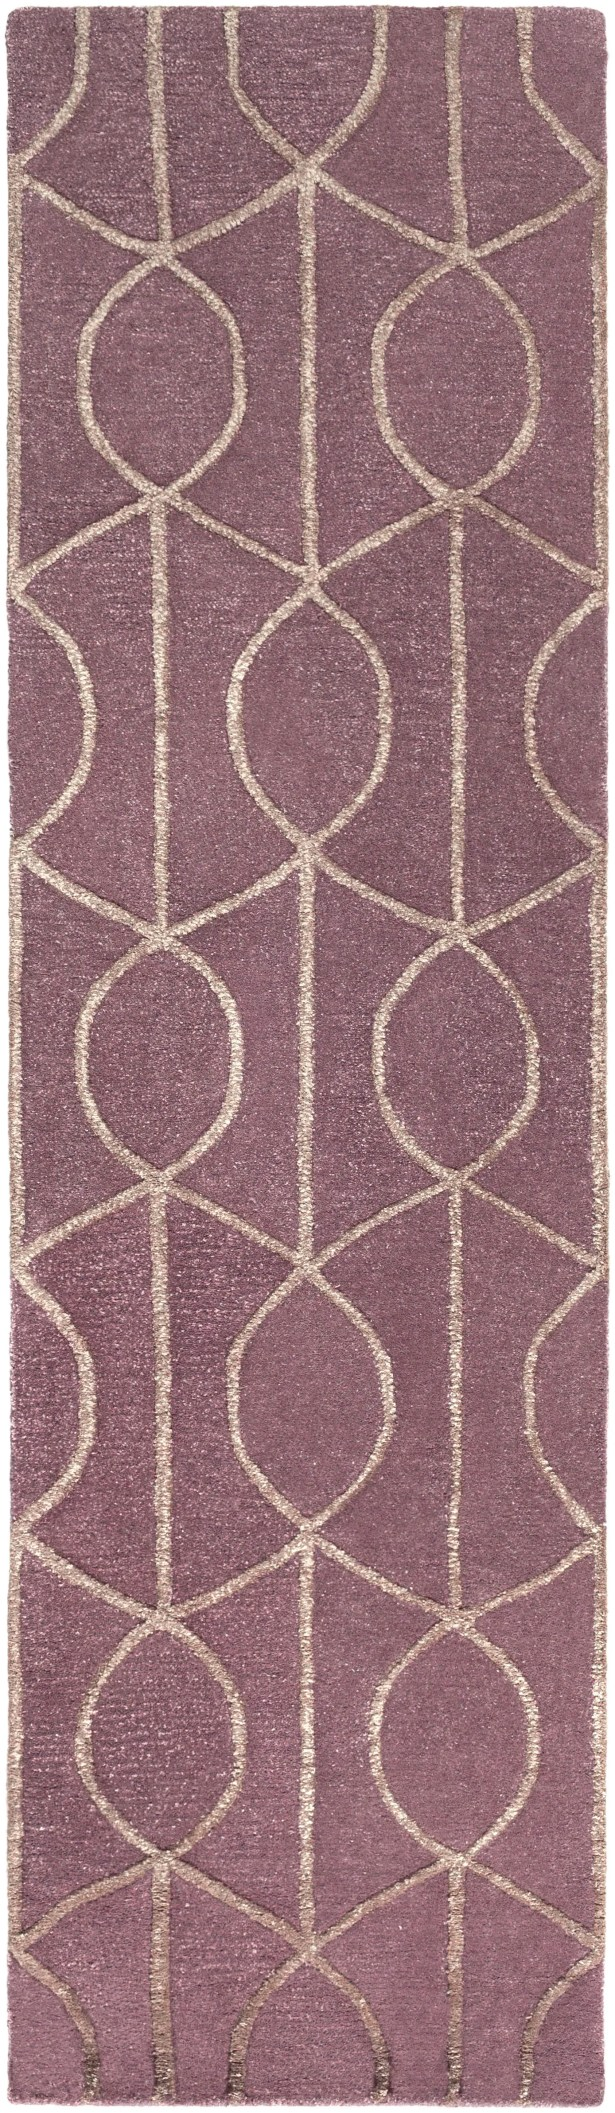 Abbey Hand-Tufted Purple Area Rug Rug Size: Runner 2'3